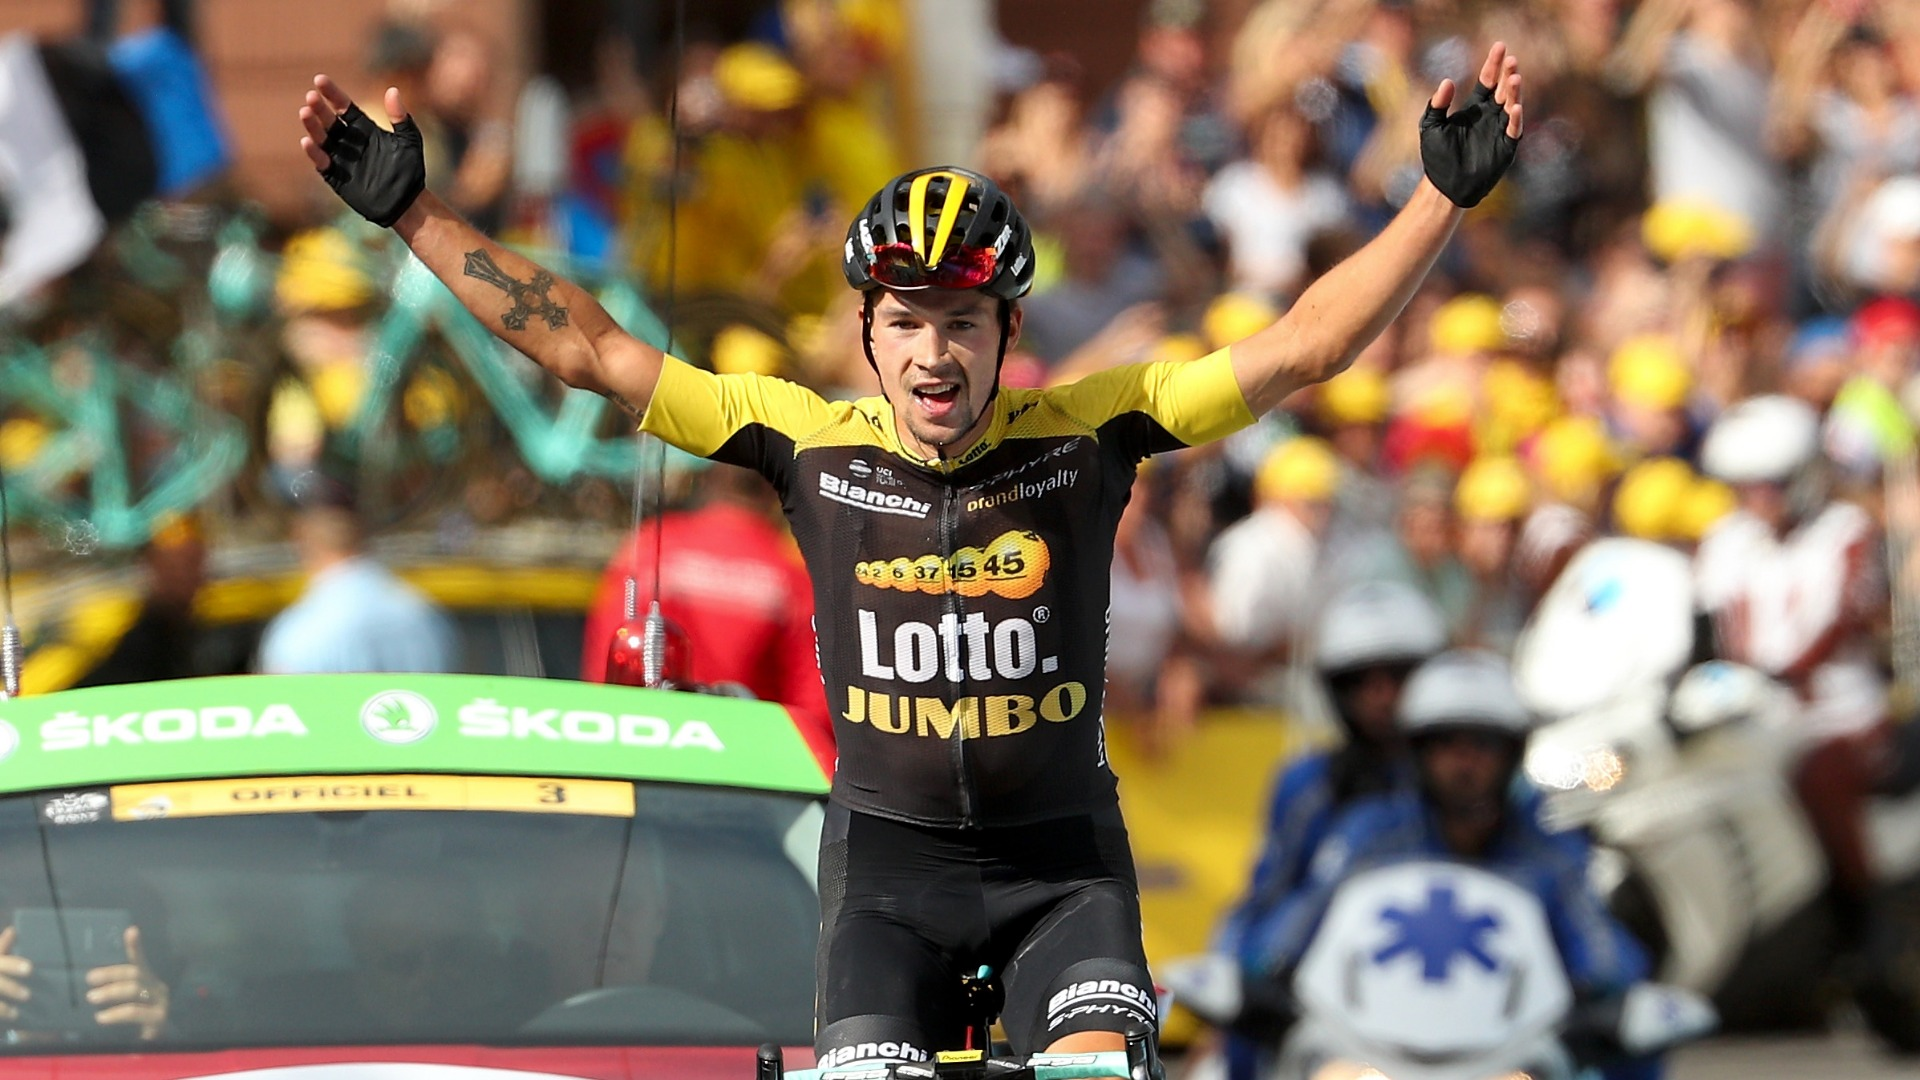 No Slovenian rider had ever won a Grand Tour before, but Vuelta a Espana champion Primoz Roglic was joined by a compatriot on the podium.